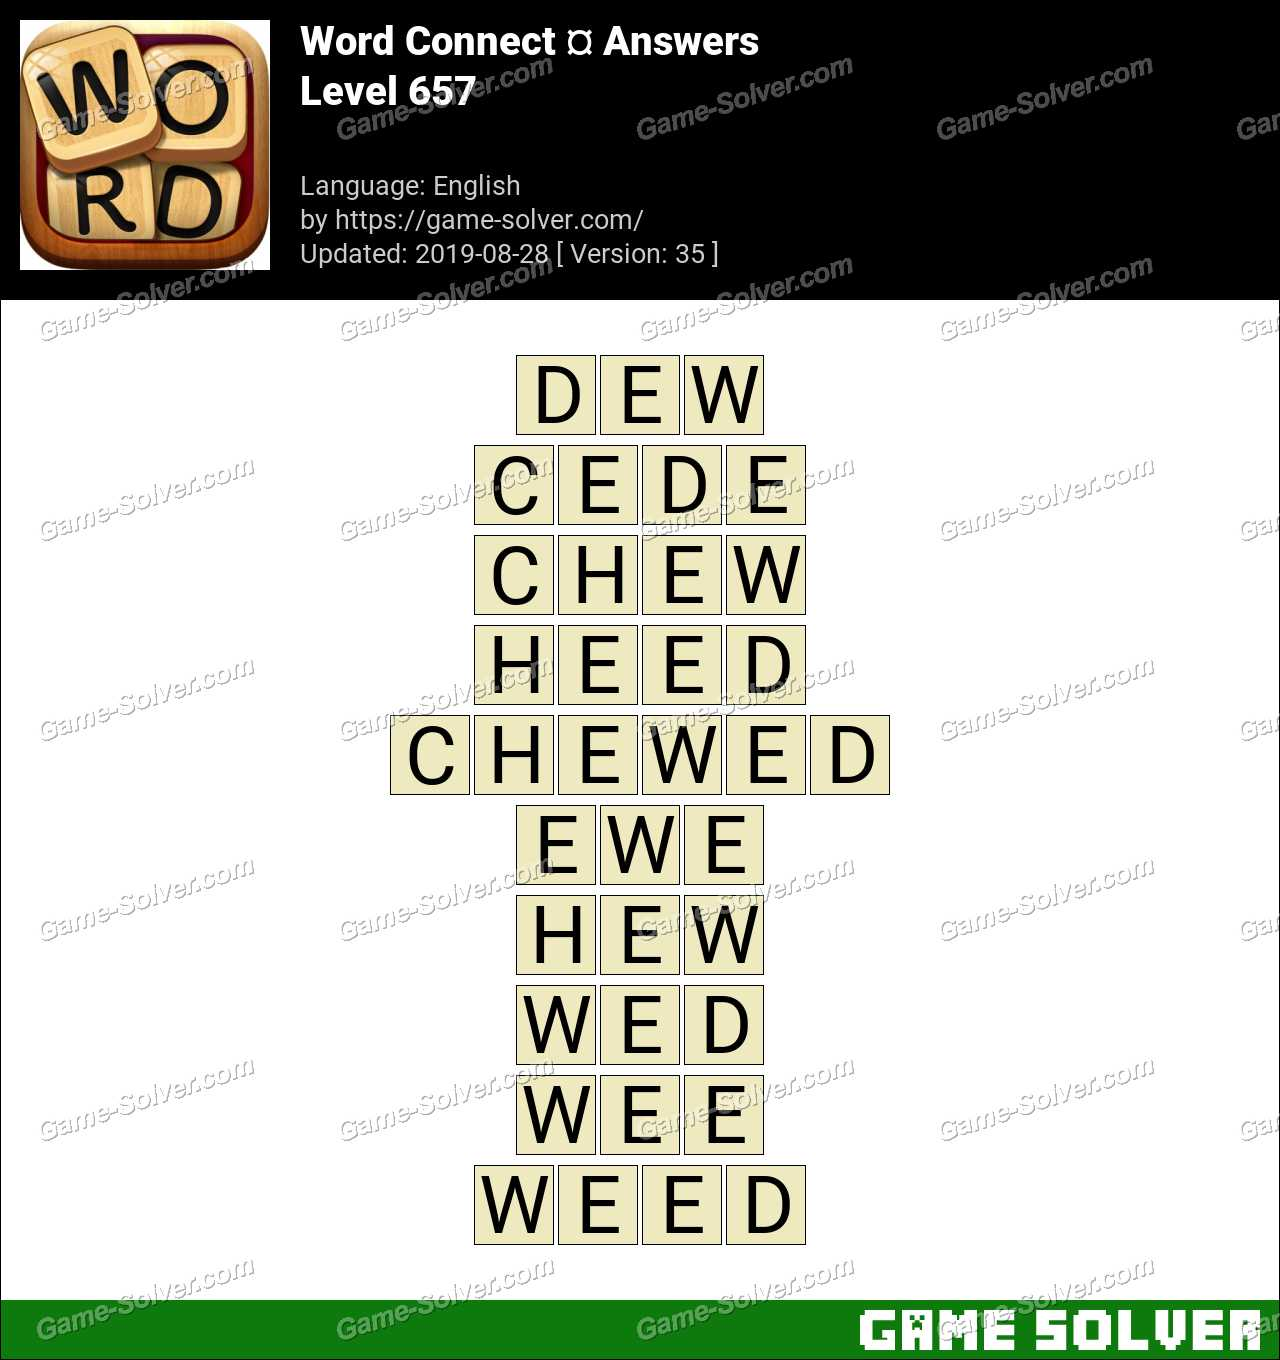 Word Connect Level 657 Answers